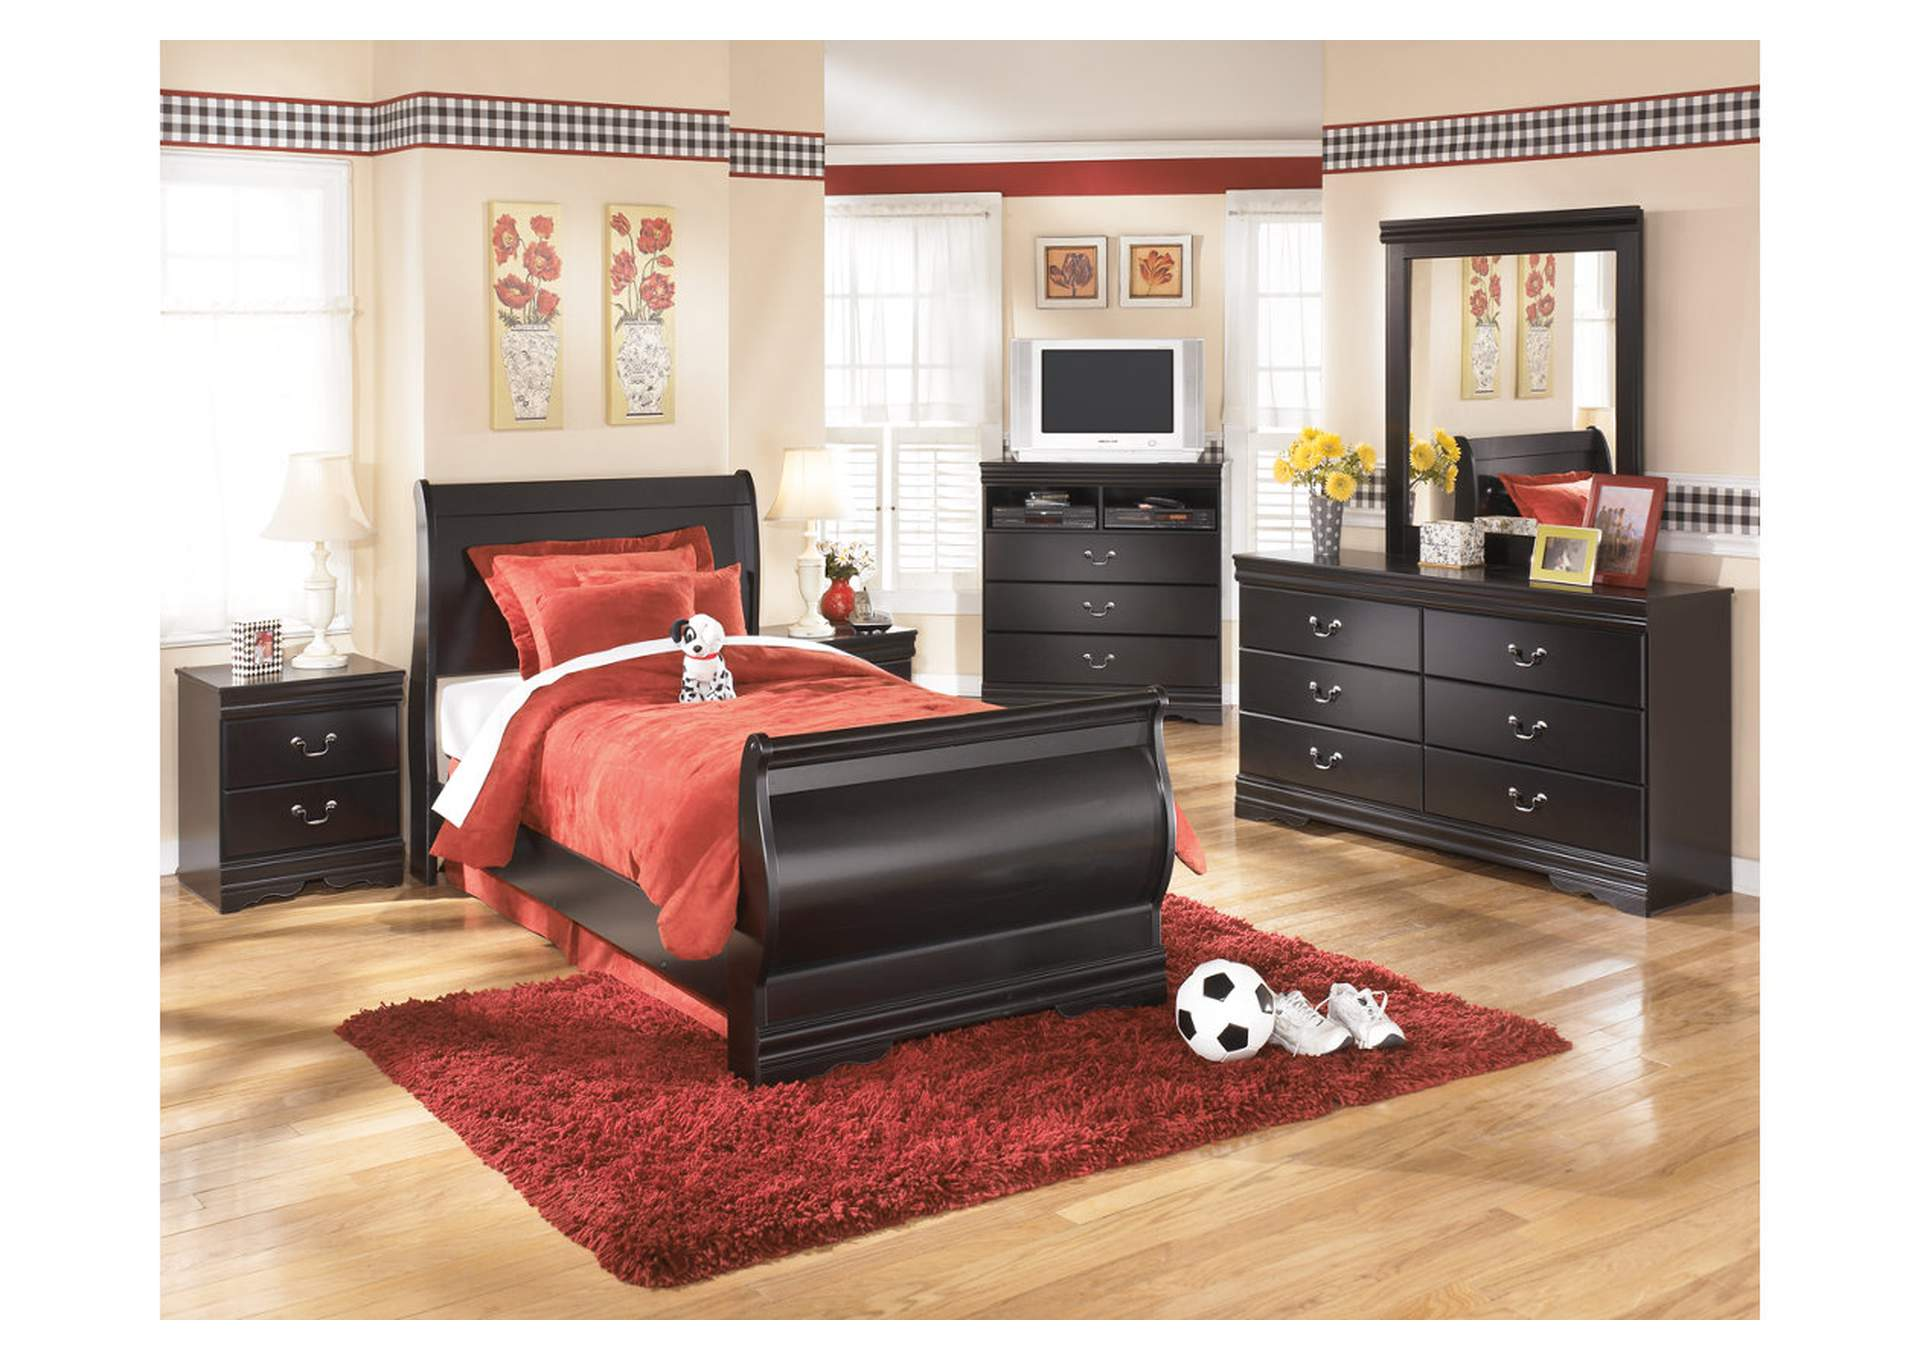 Huey Vineyard Full Sleigh Bed,Direct To Consumer Express